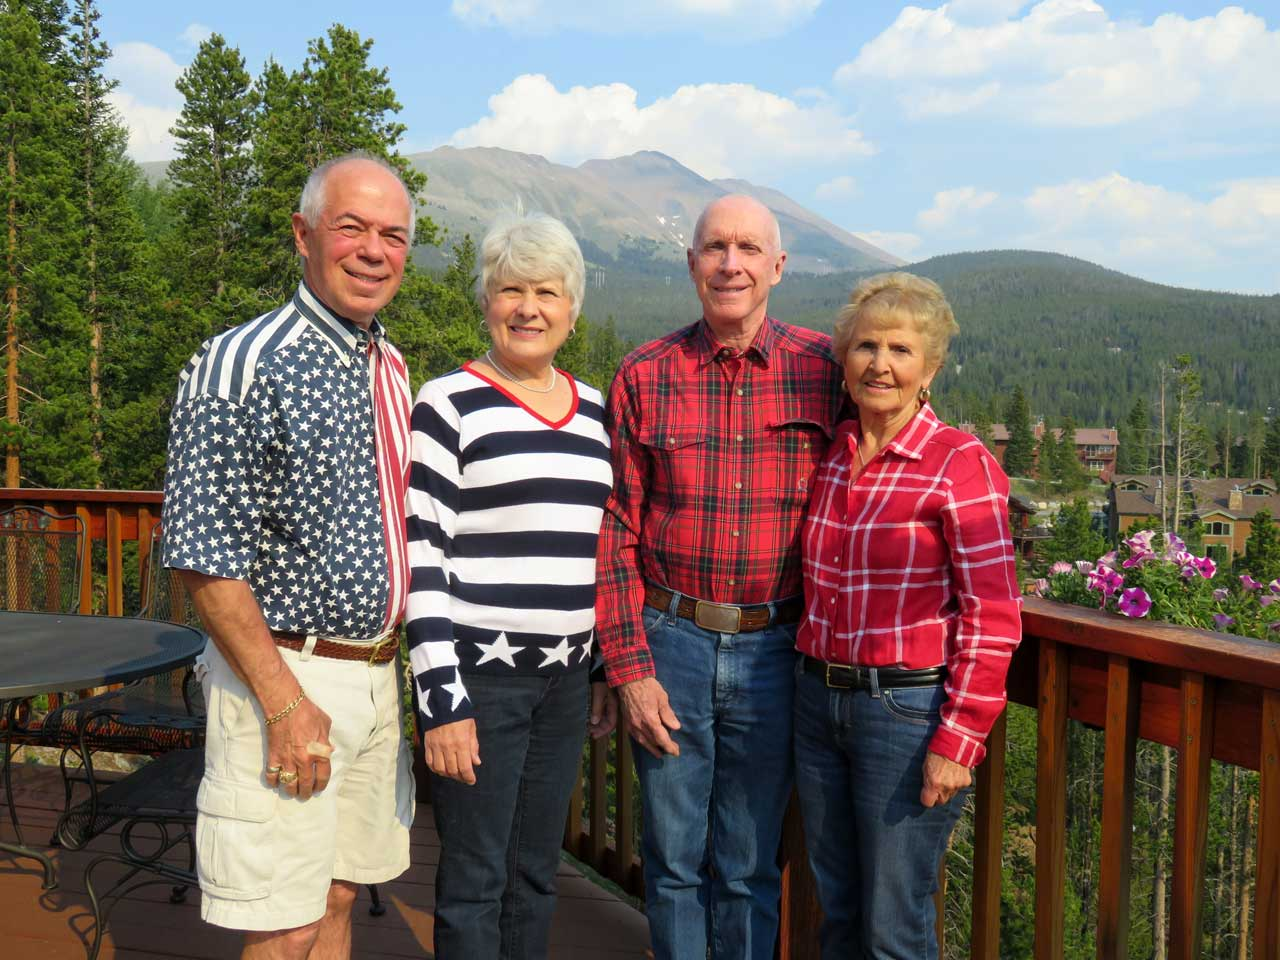 Schuyler and Phyllis Stuckey at John and Violeta Powell's in Breckenridge, CO